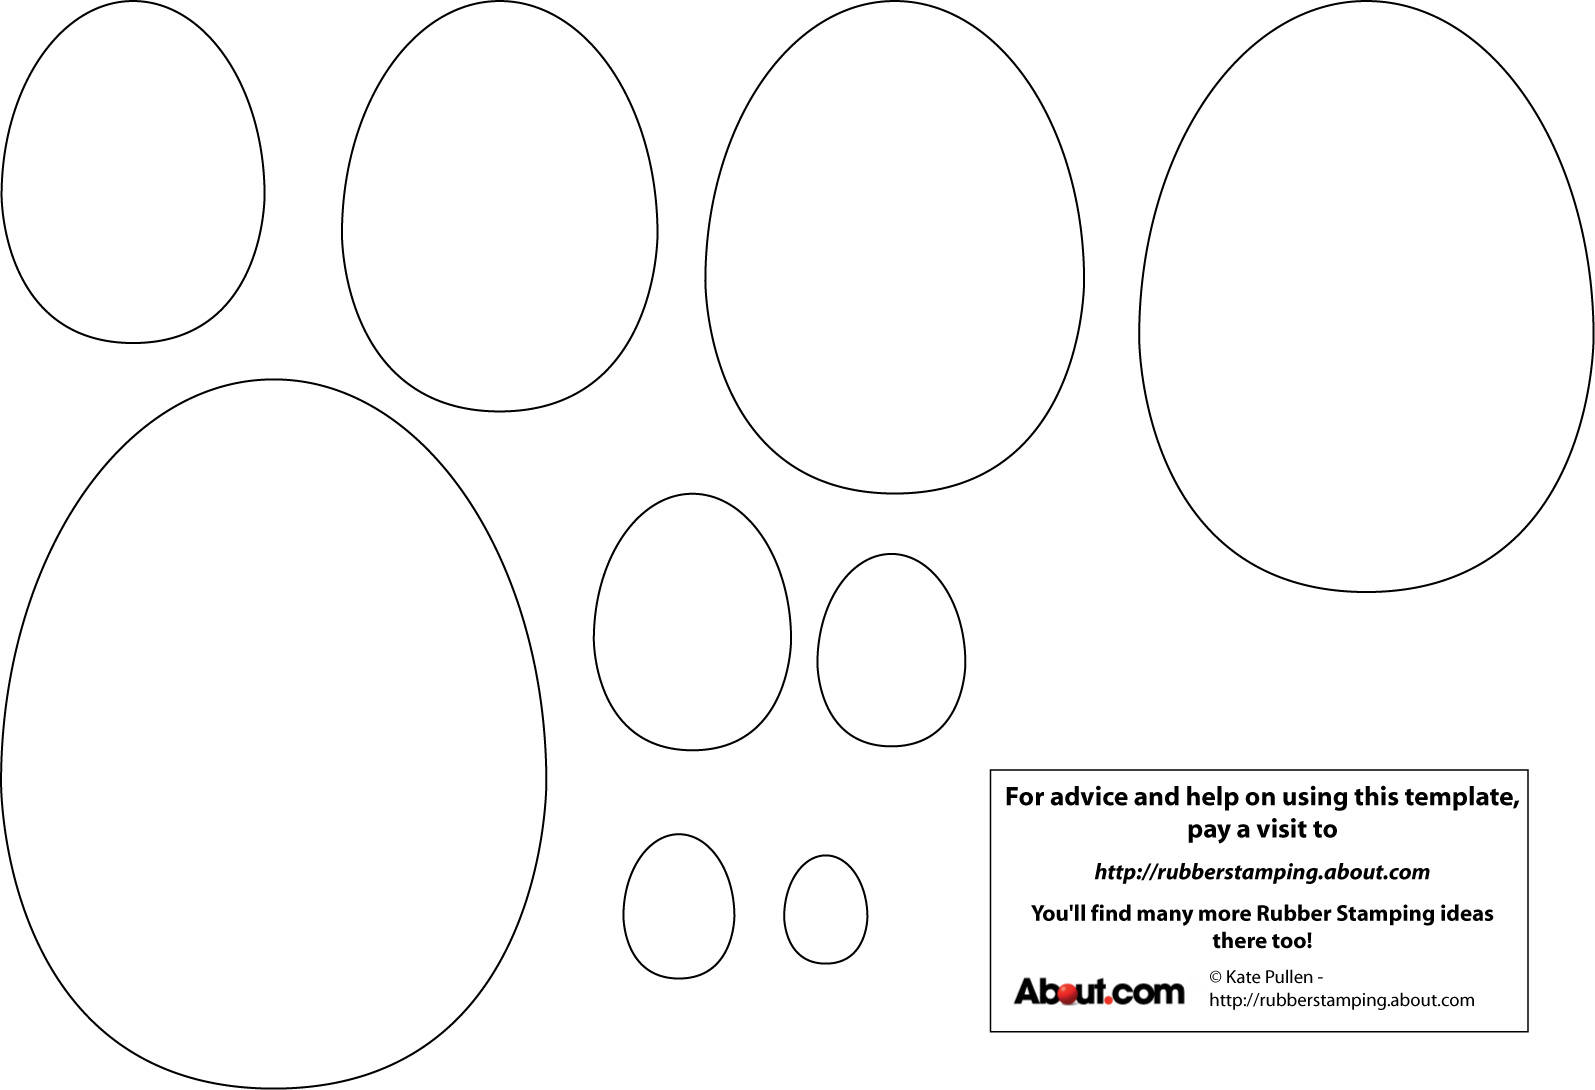 early play templates: Simple easter egg templates